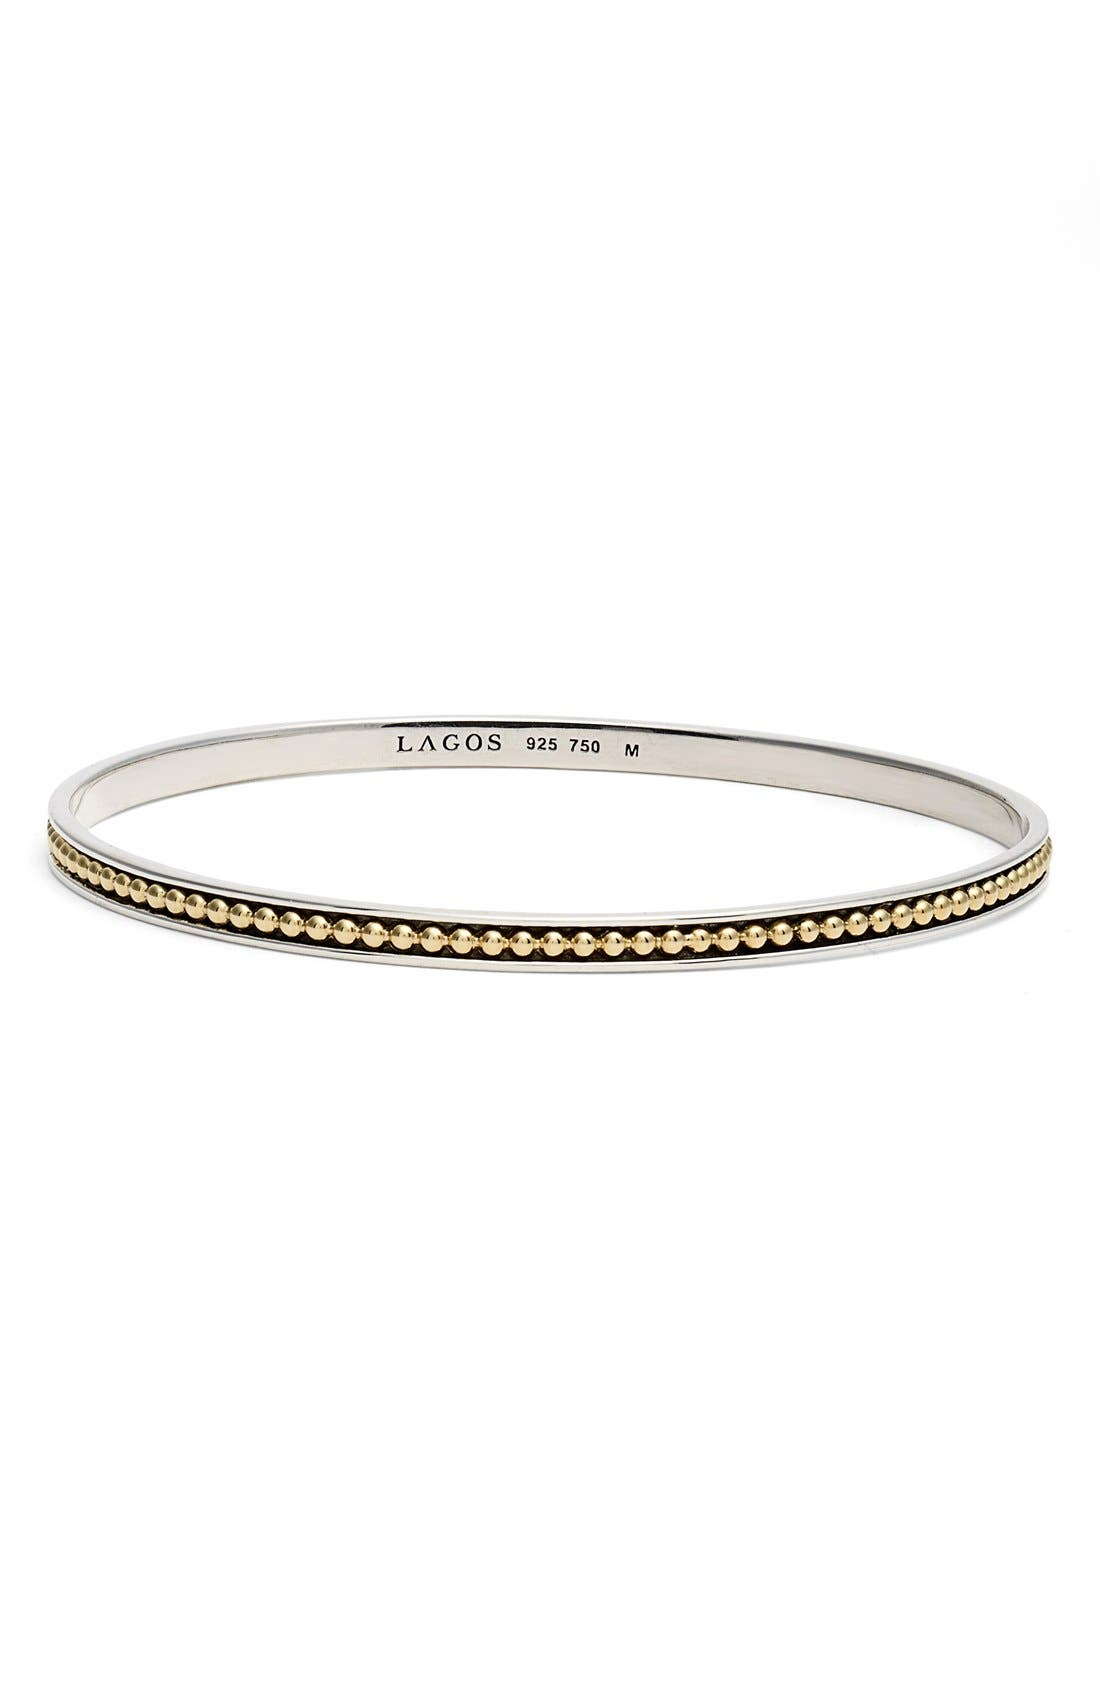 LAGOS 'Enso' Caviar Bangle